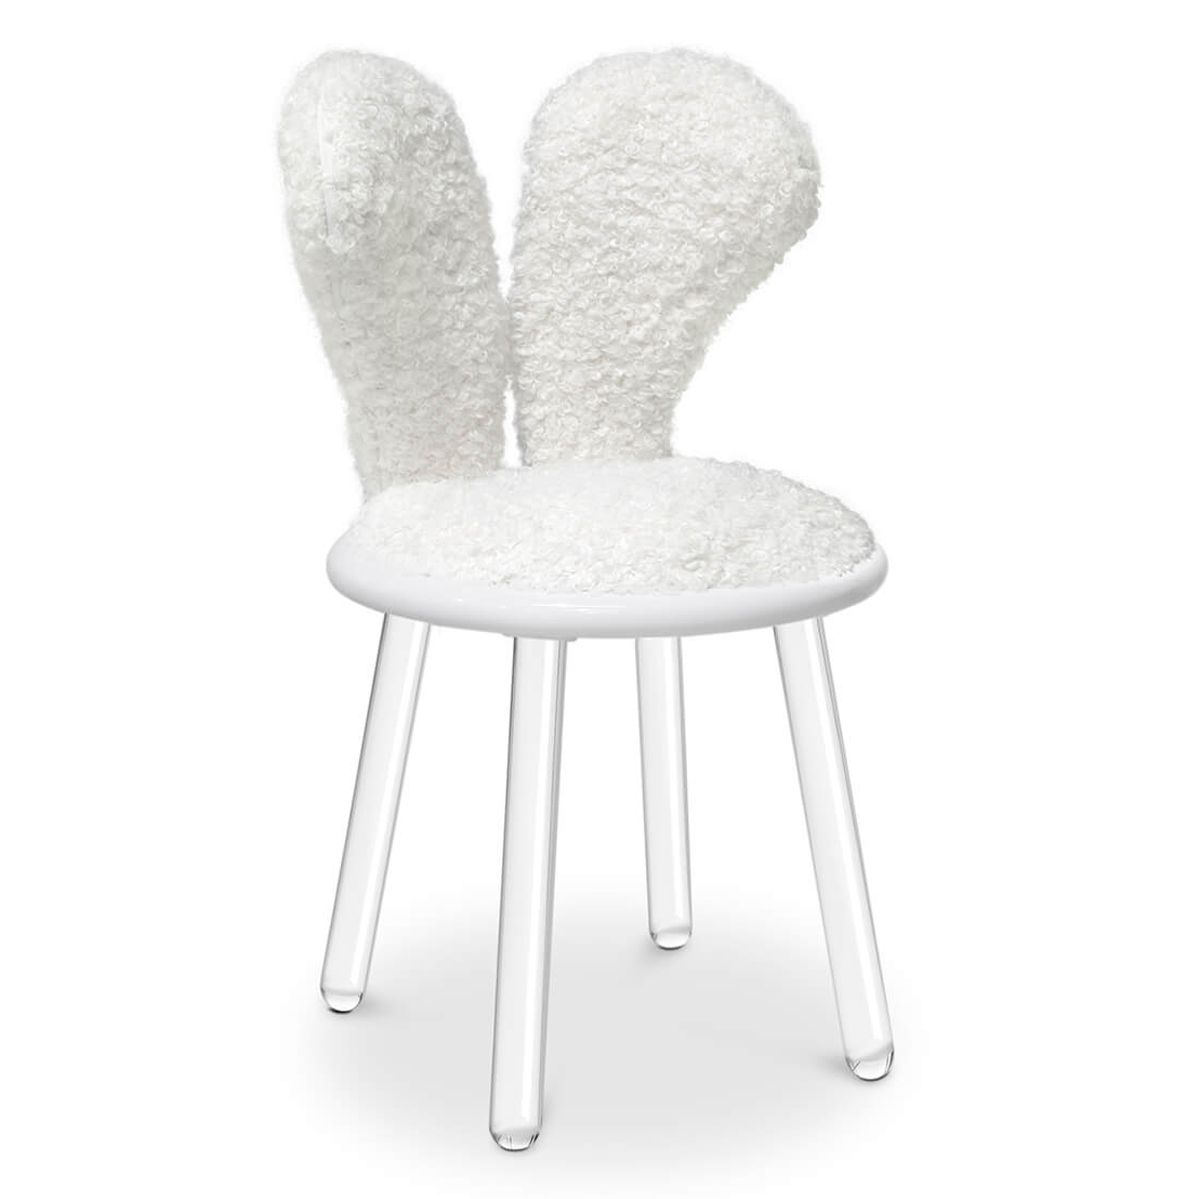 kids furniture Kids Furniture: Special Discounts Only This Week! 9 14